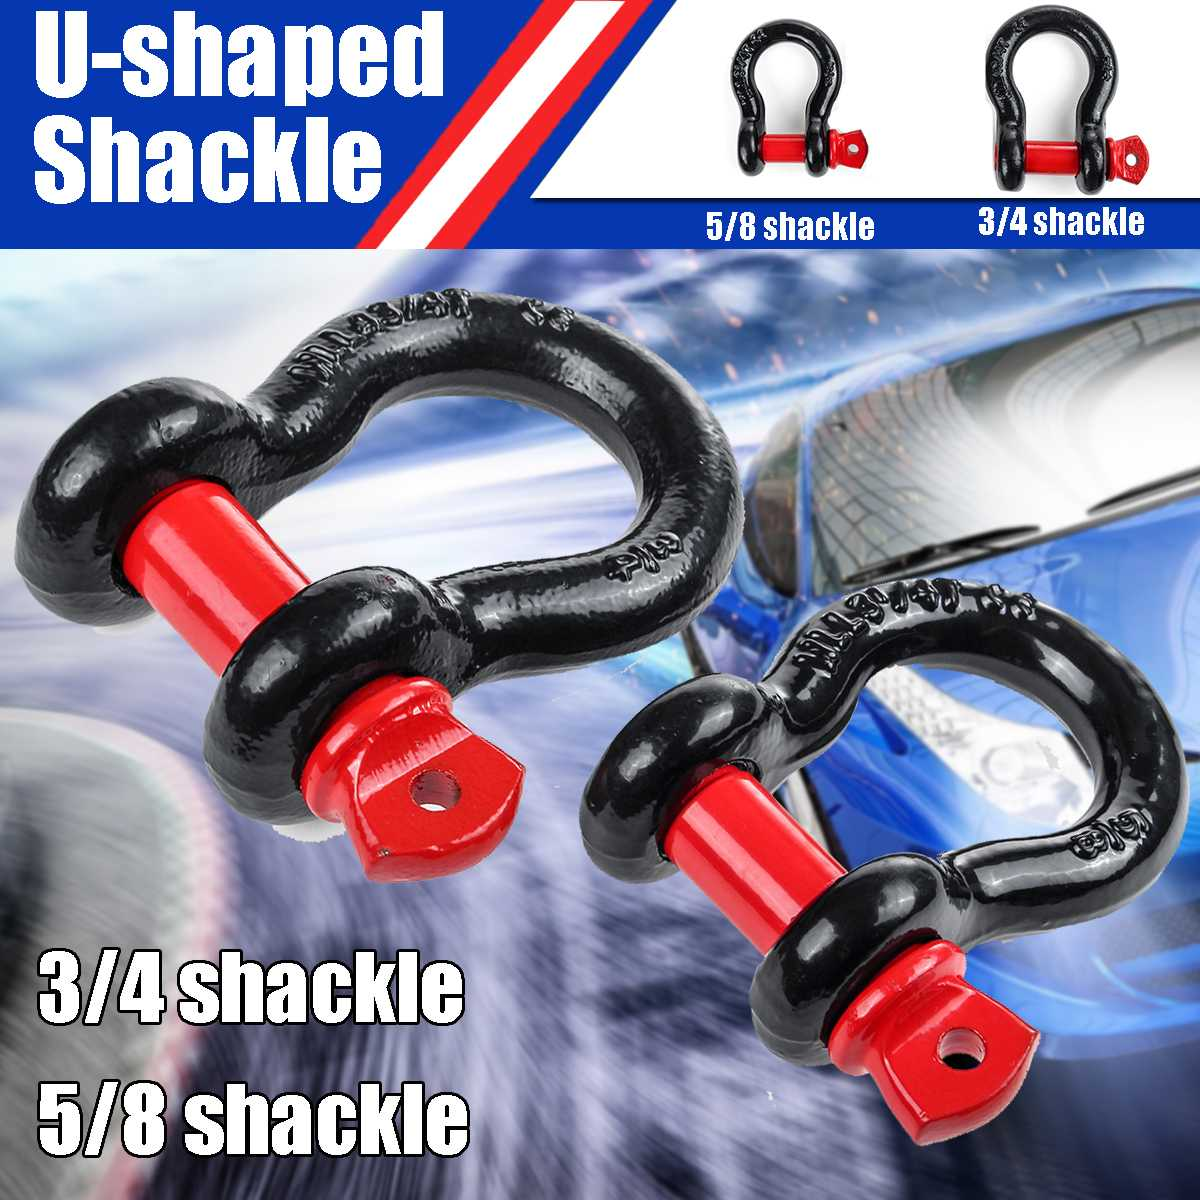 Universal Trailer Hook Heavy Duty Galvanized Shackles D Ring 12,000 Lbs Capacity For Vehicle Recovery Towing Car 3/4 5/8 Shackle